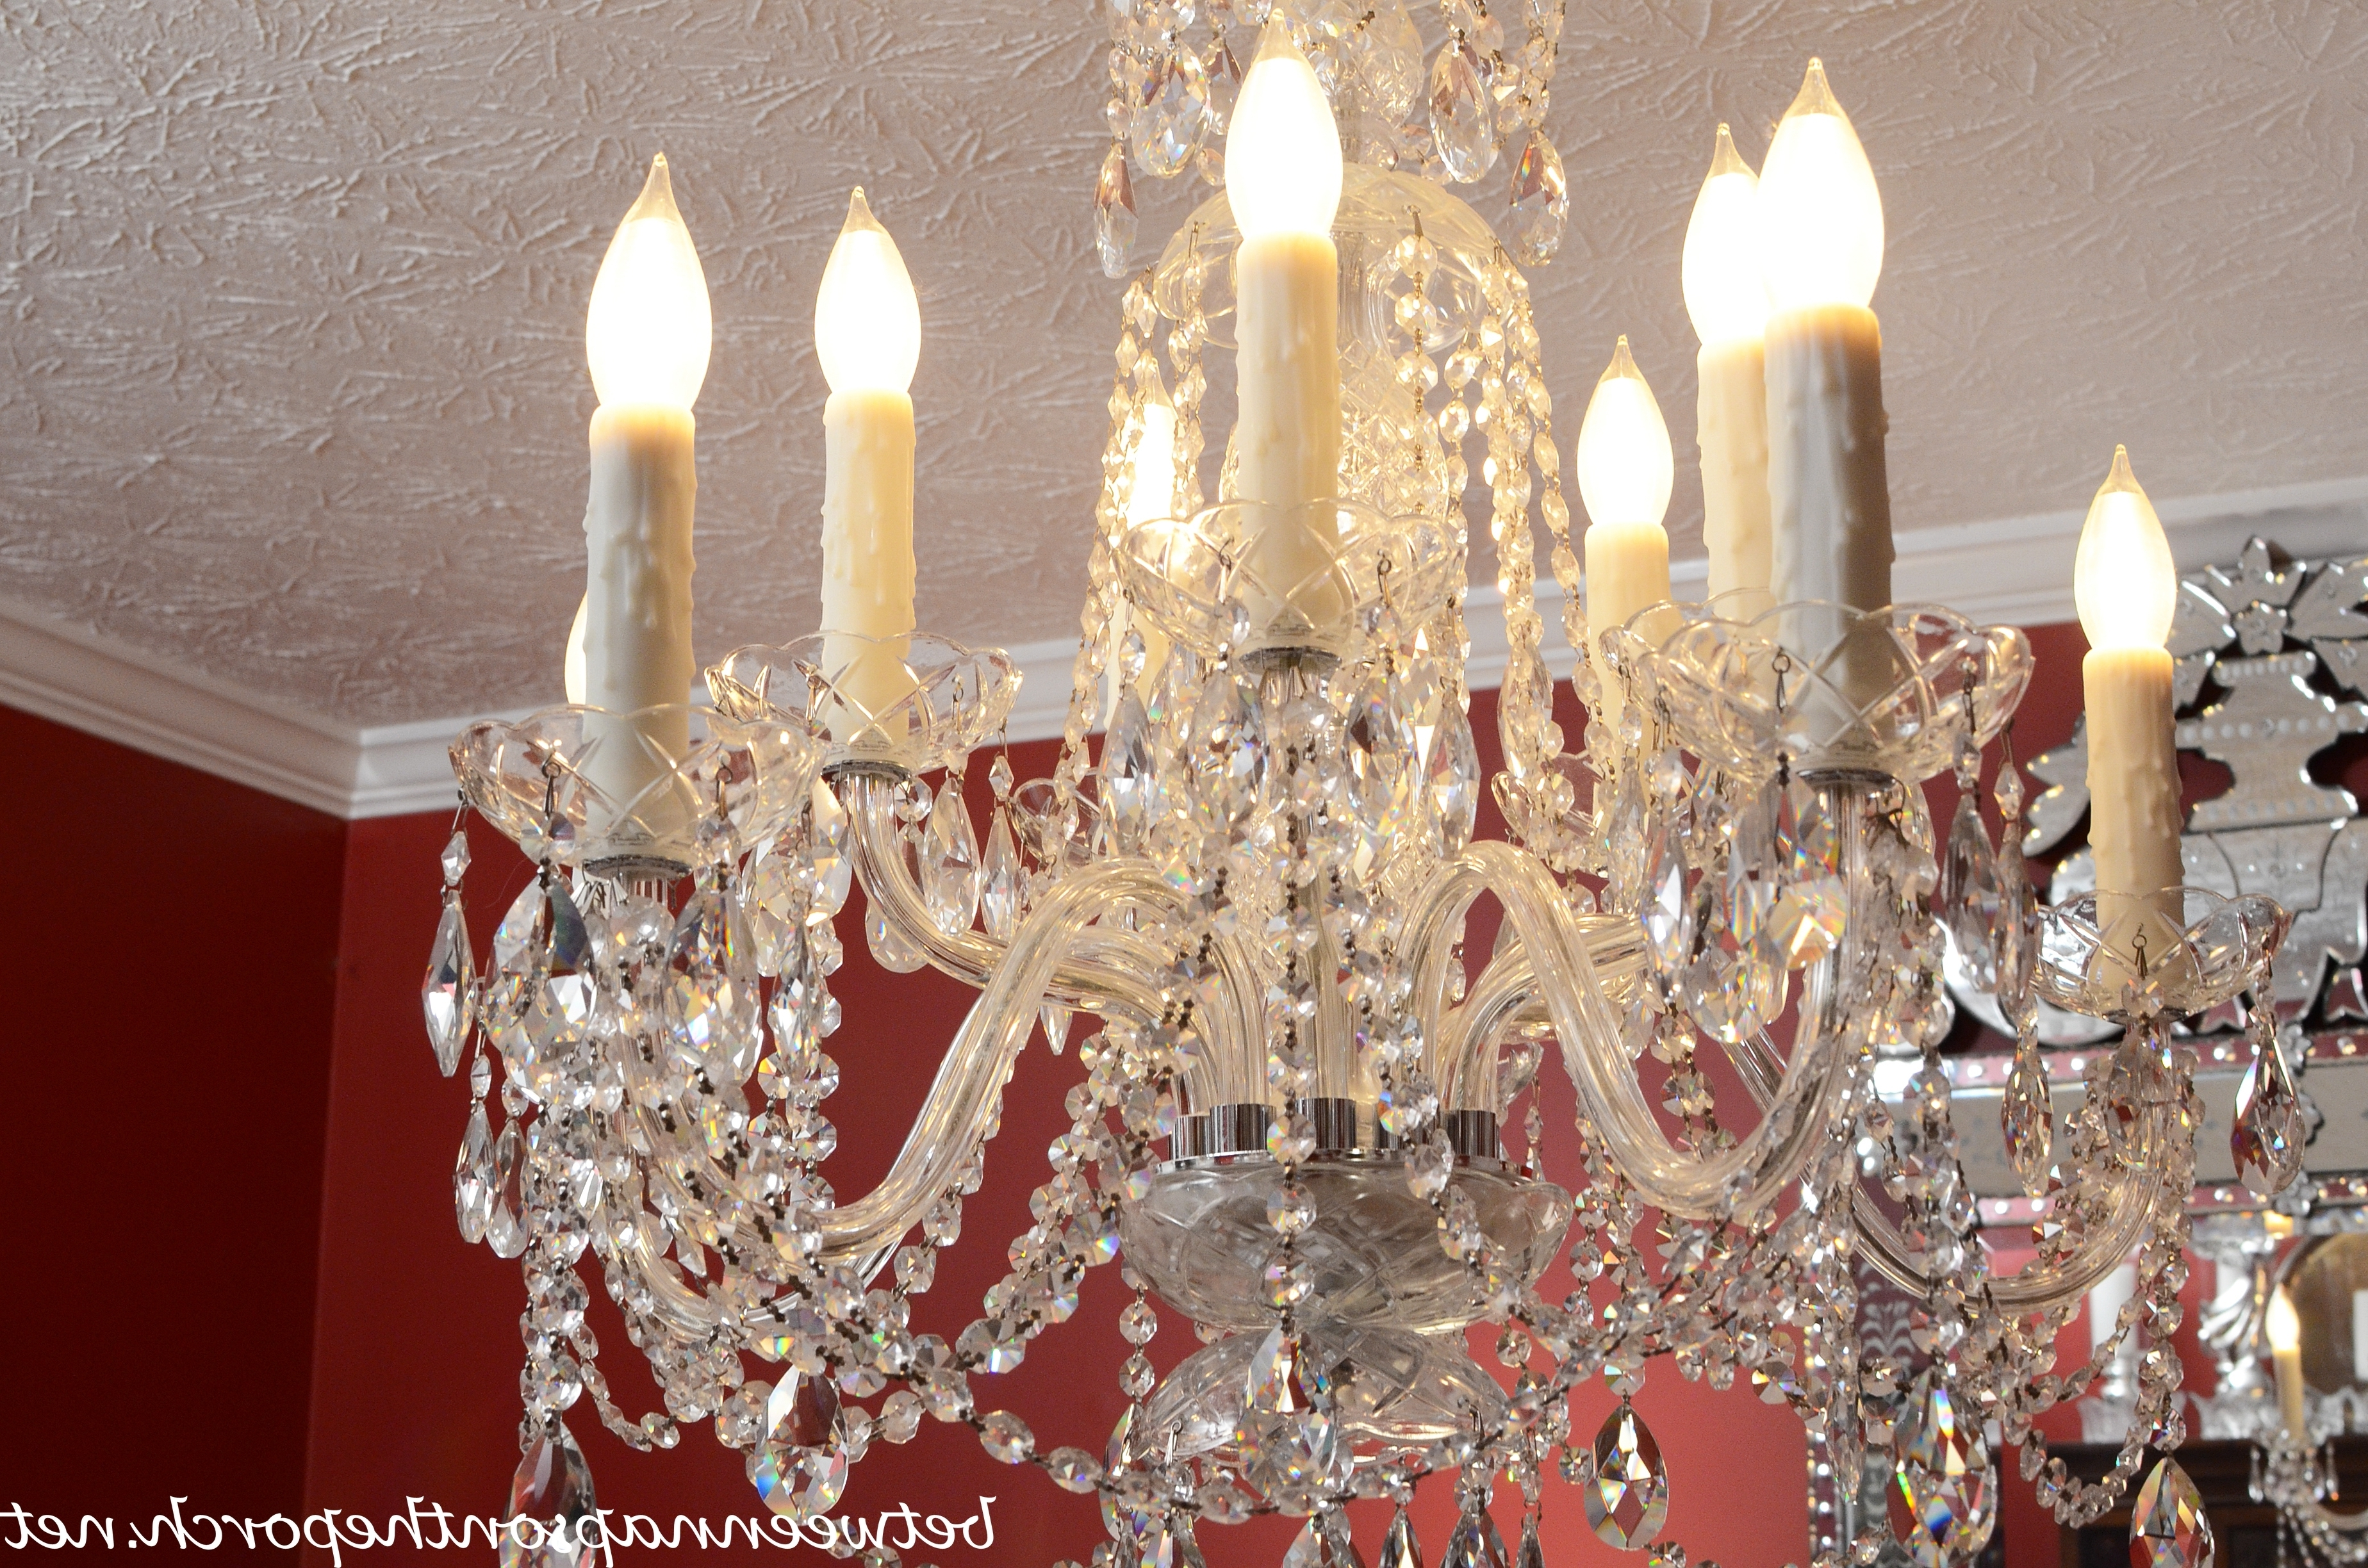 Trendy Transform An Ordinary Chandelier With Resin Candle Covers And Silk Within Weird Chandeliers (View 14 of 20)